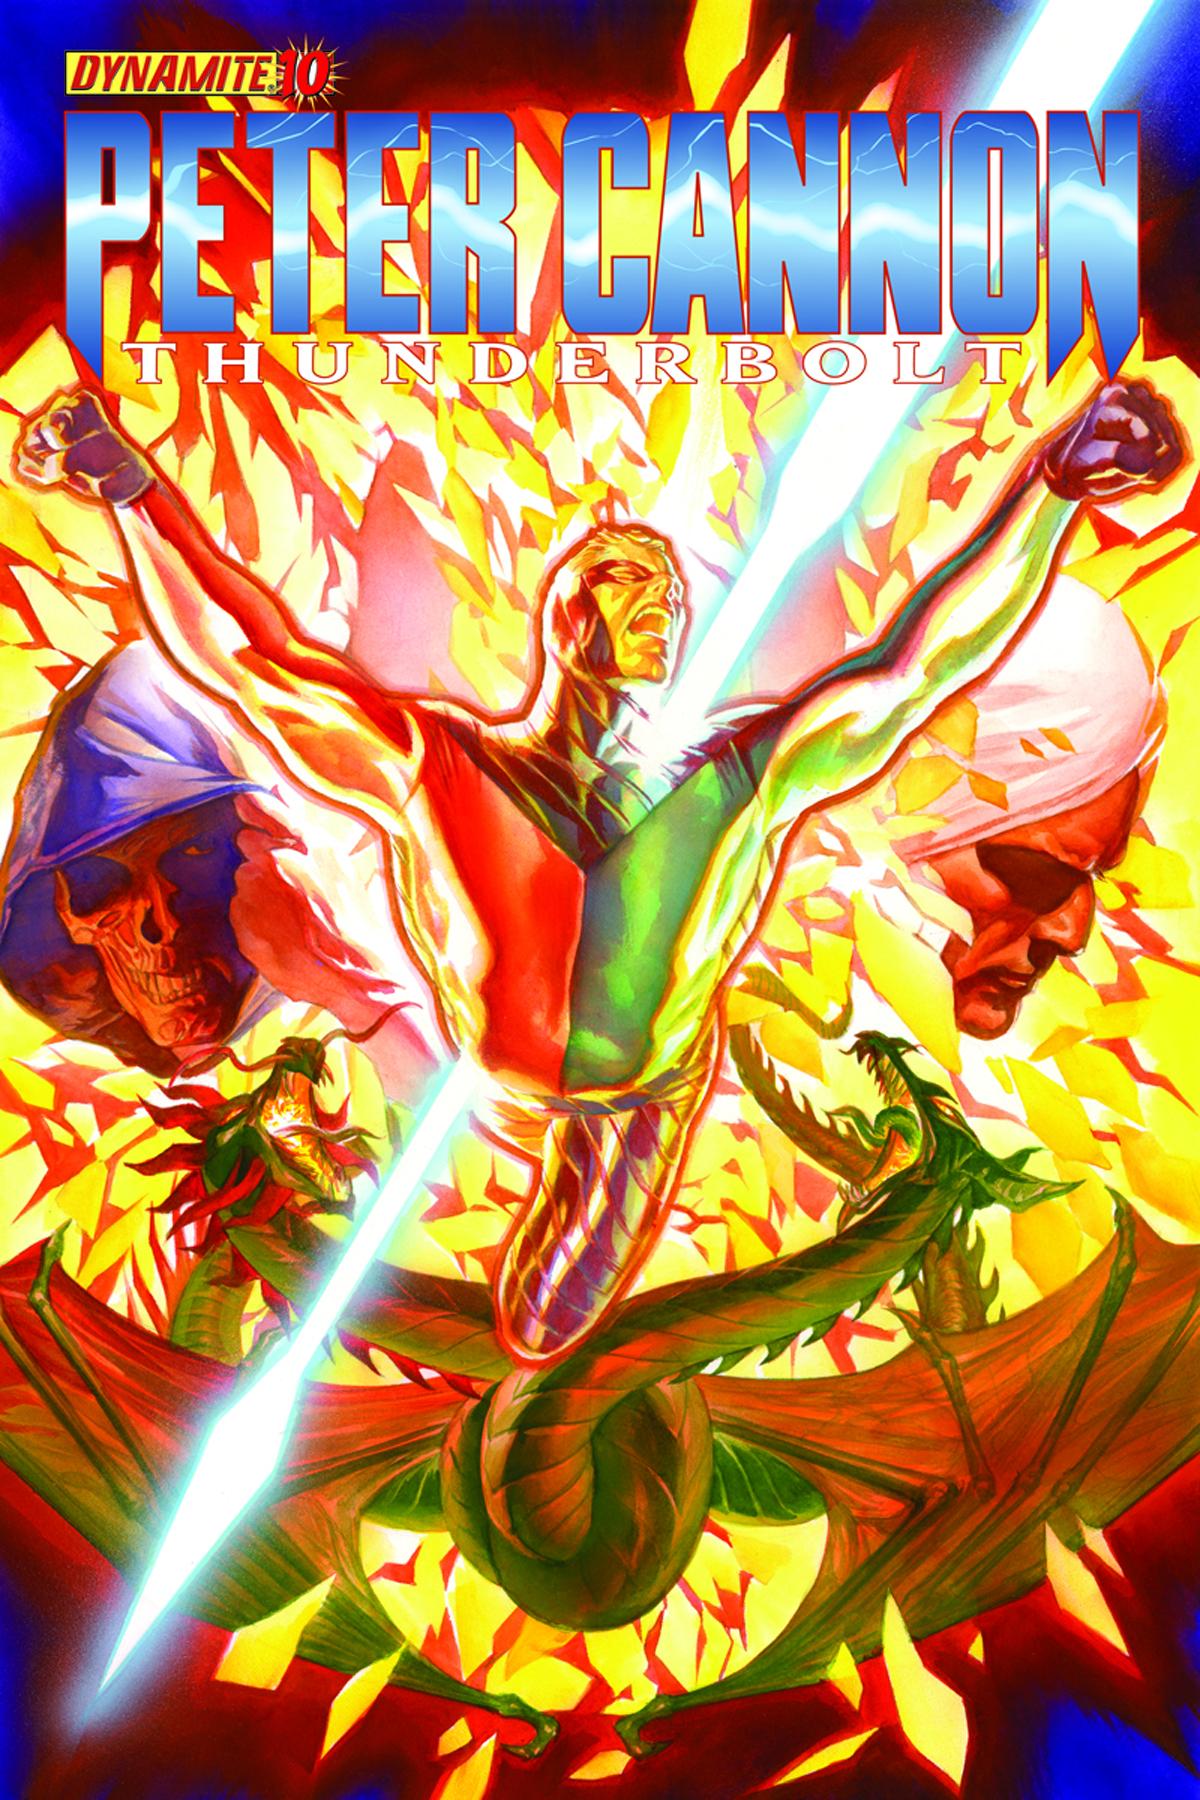 PETER CANNON THUNDERBOLT #10 CVR A ALEX ROSS